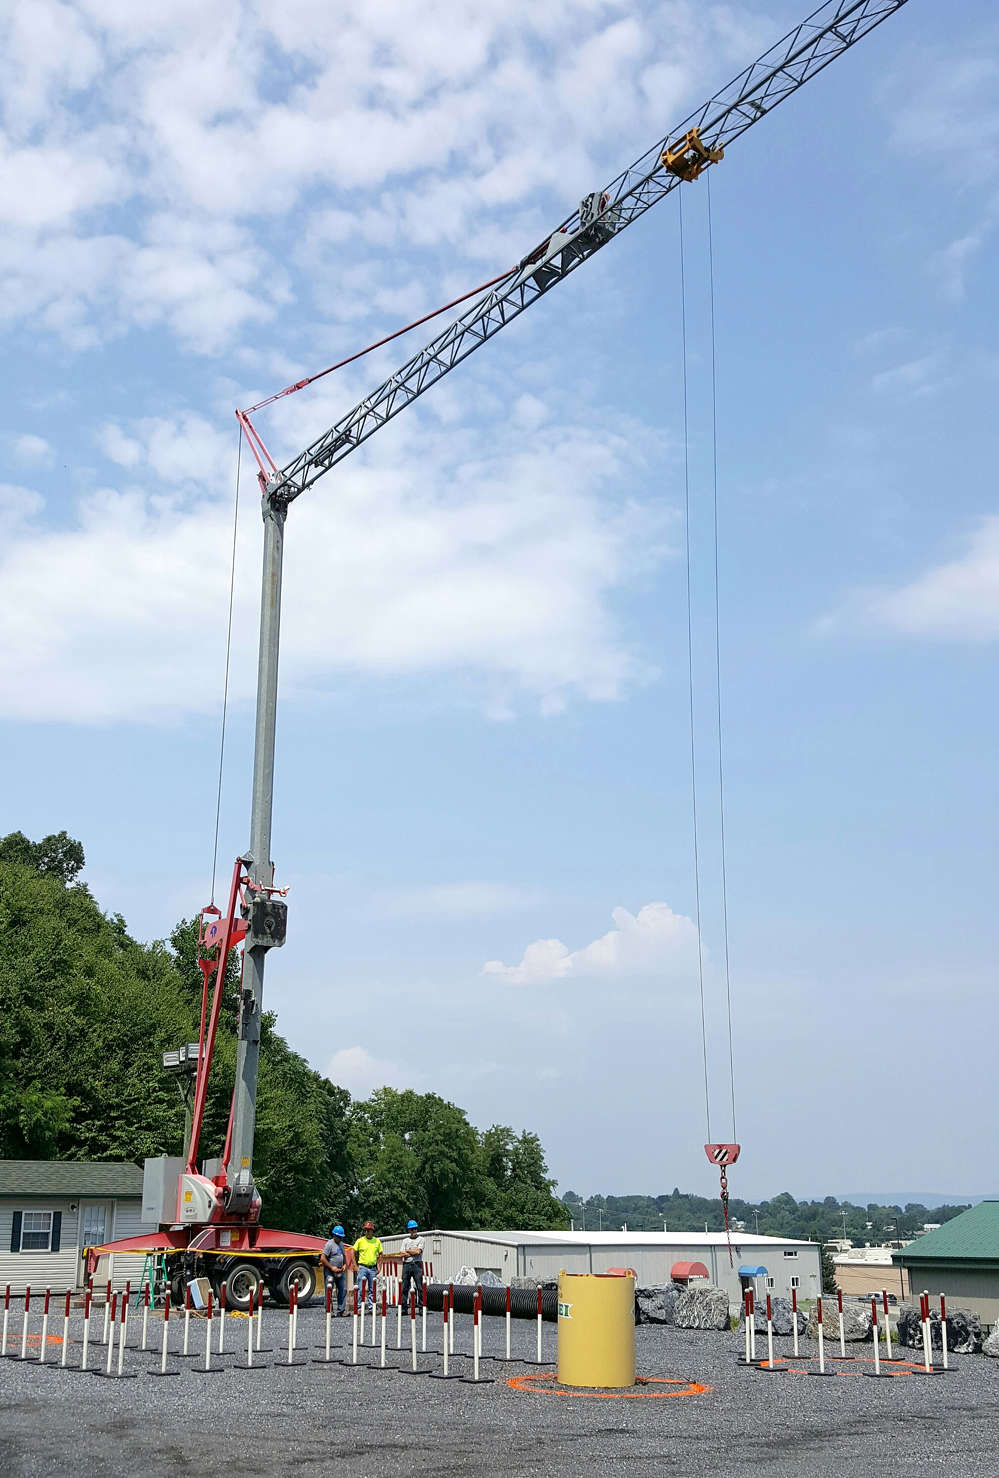 The newest addition to Stephenson's facility is a Potain Igo MA-21 tower crane dedicated solely for training and testing purposes.